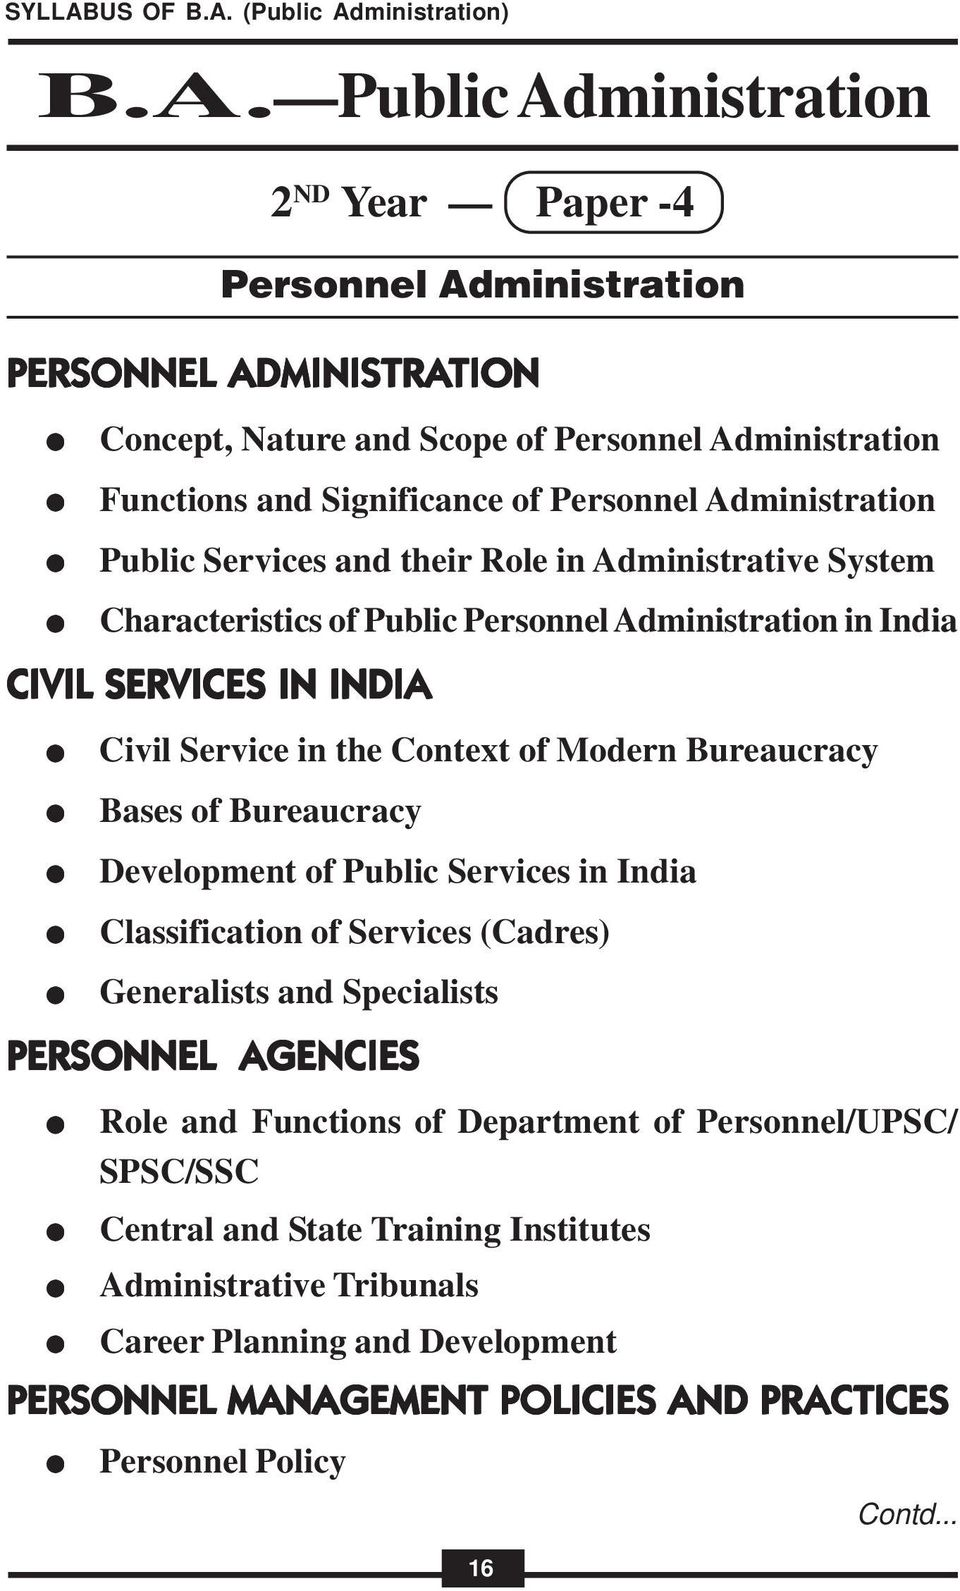 Bureaucracy Bases of Bureaucracy Development of Public Services in India Classification of Services (Cadres) Generalists and Specialists PERSONNEL AGENCIES Role and Functions of